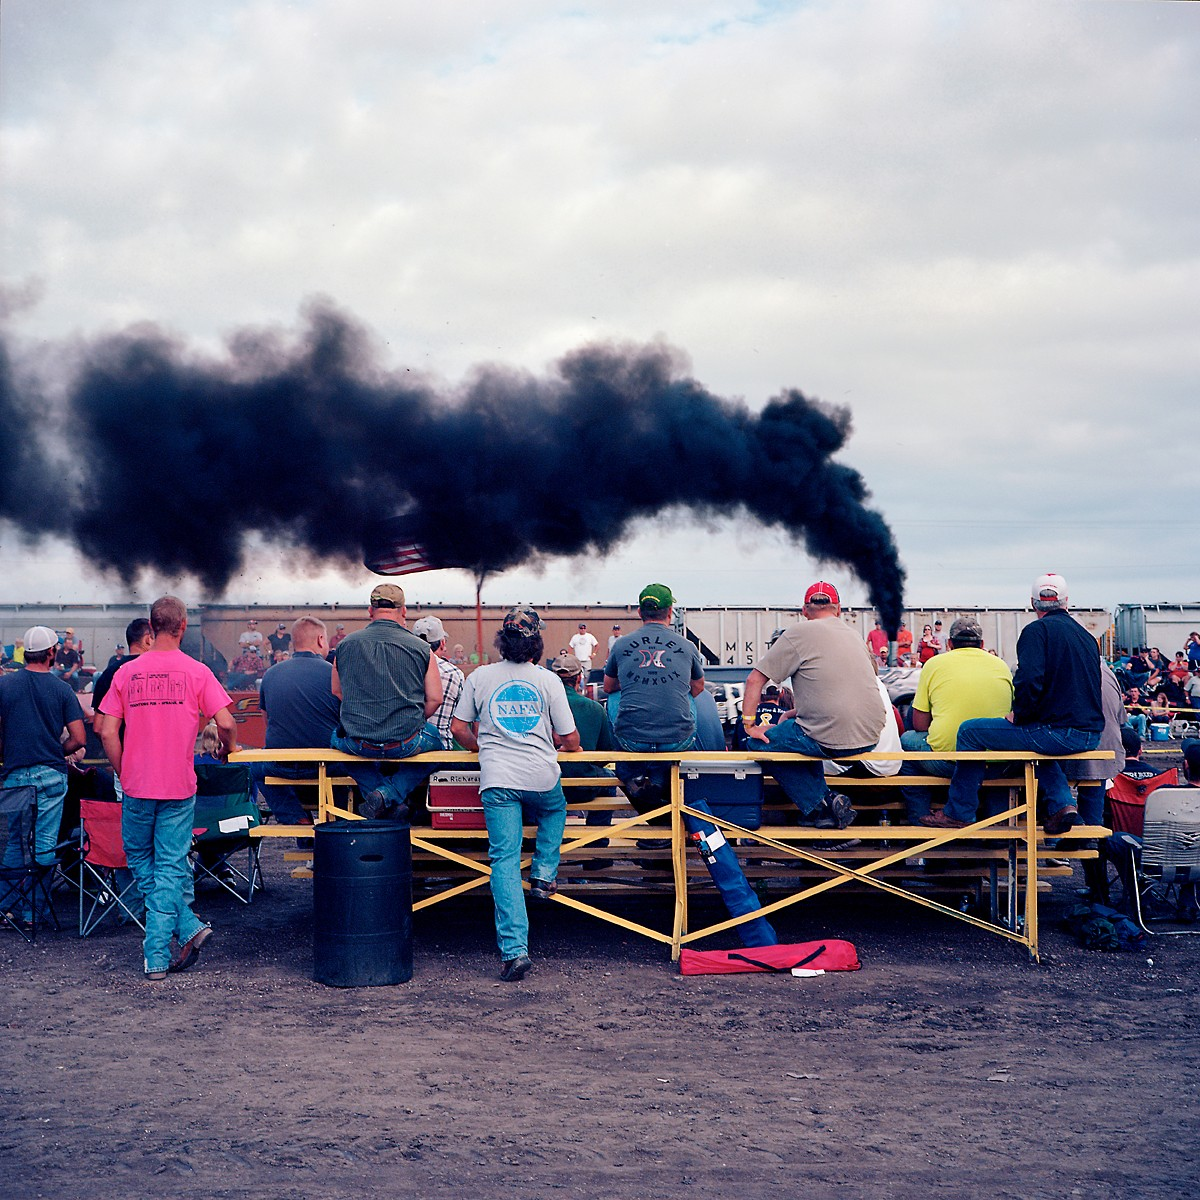 Men watch a tractor pull in Plymouth, Nebraska. The tiny town is six and a half miles from where the proposed Keystone XL pipeline would be constructed.